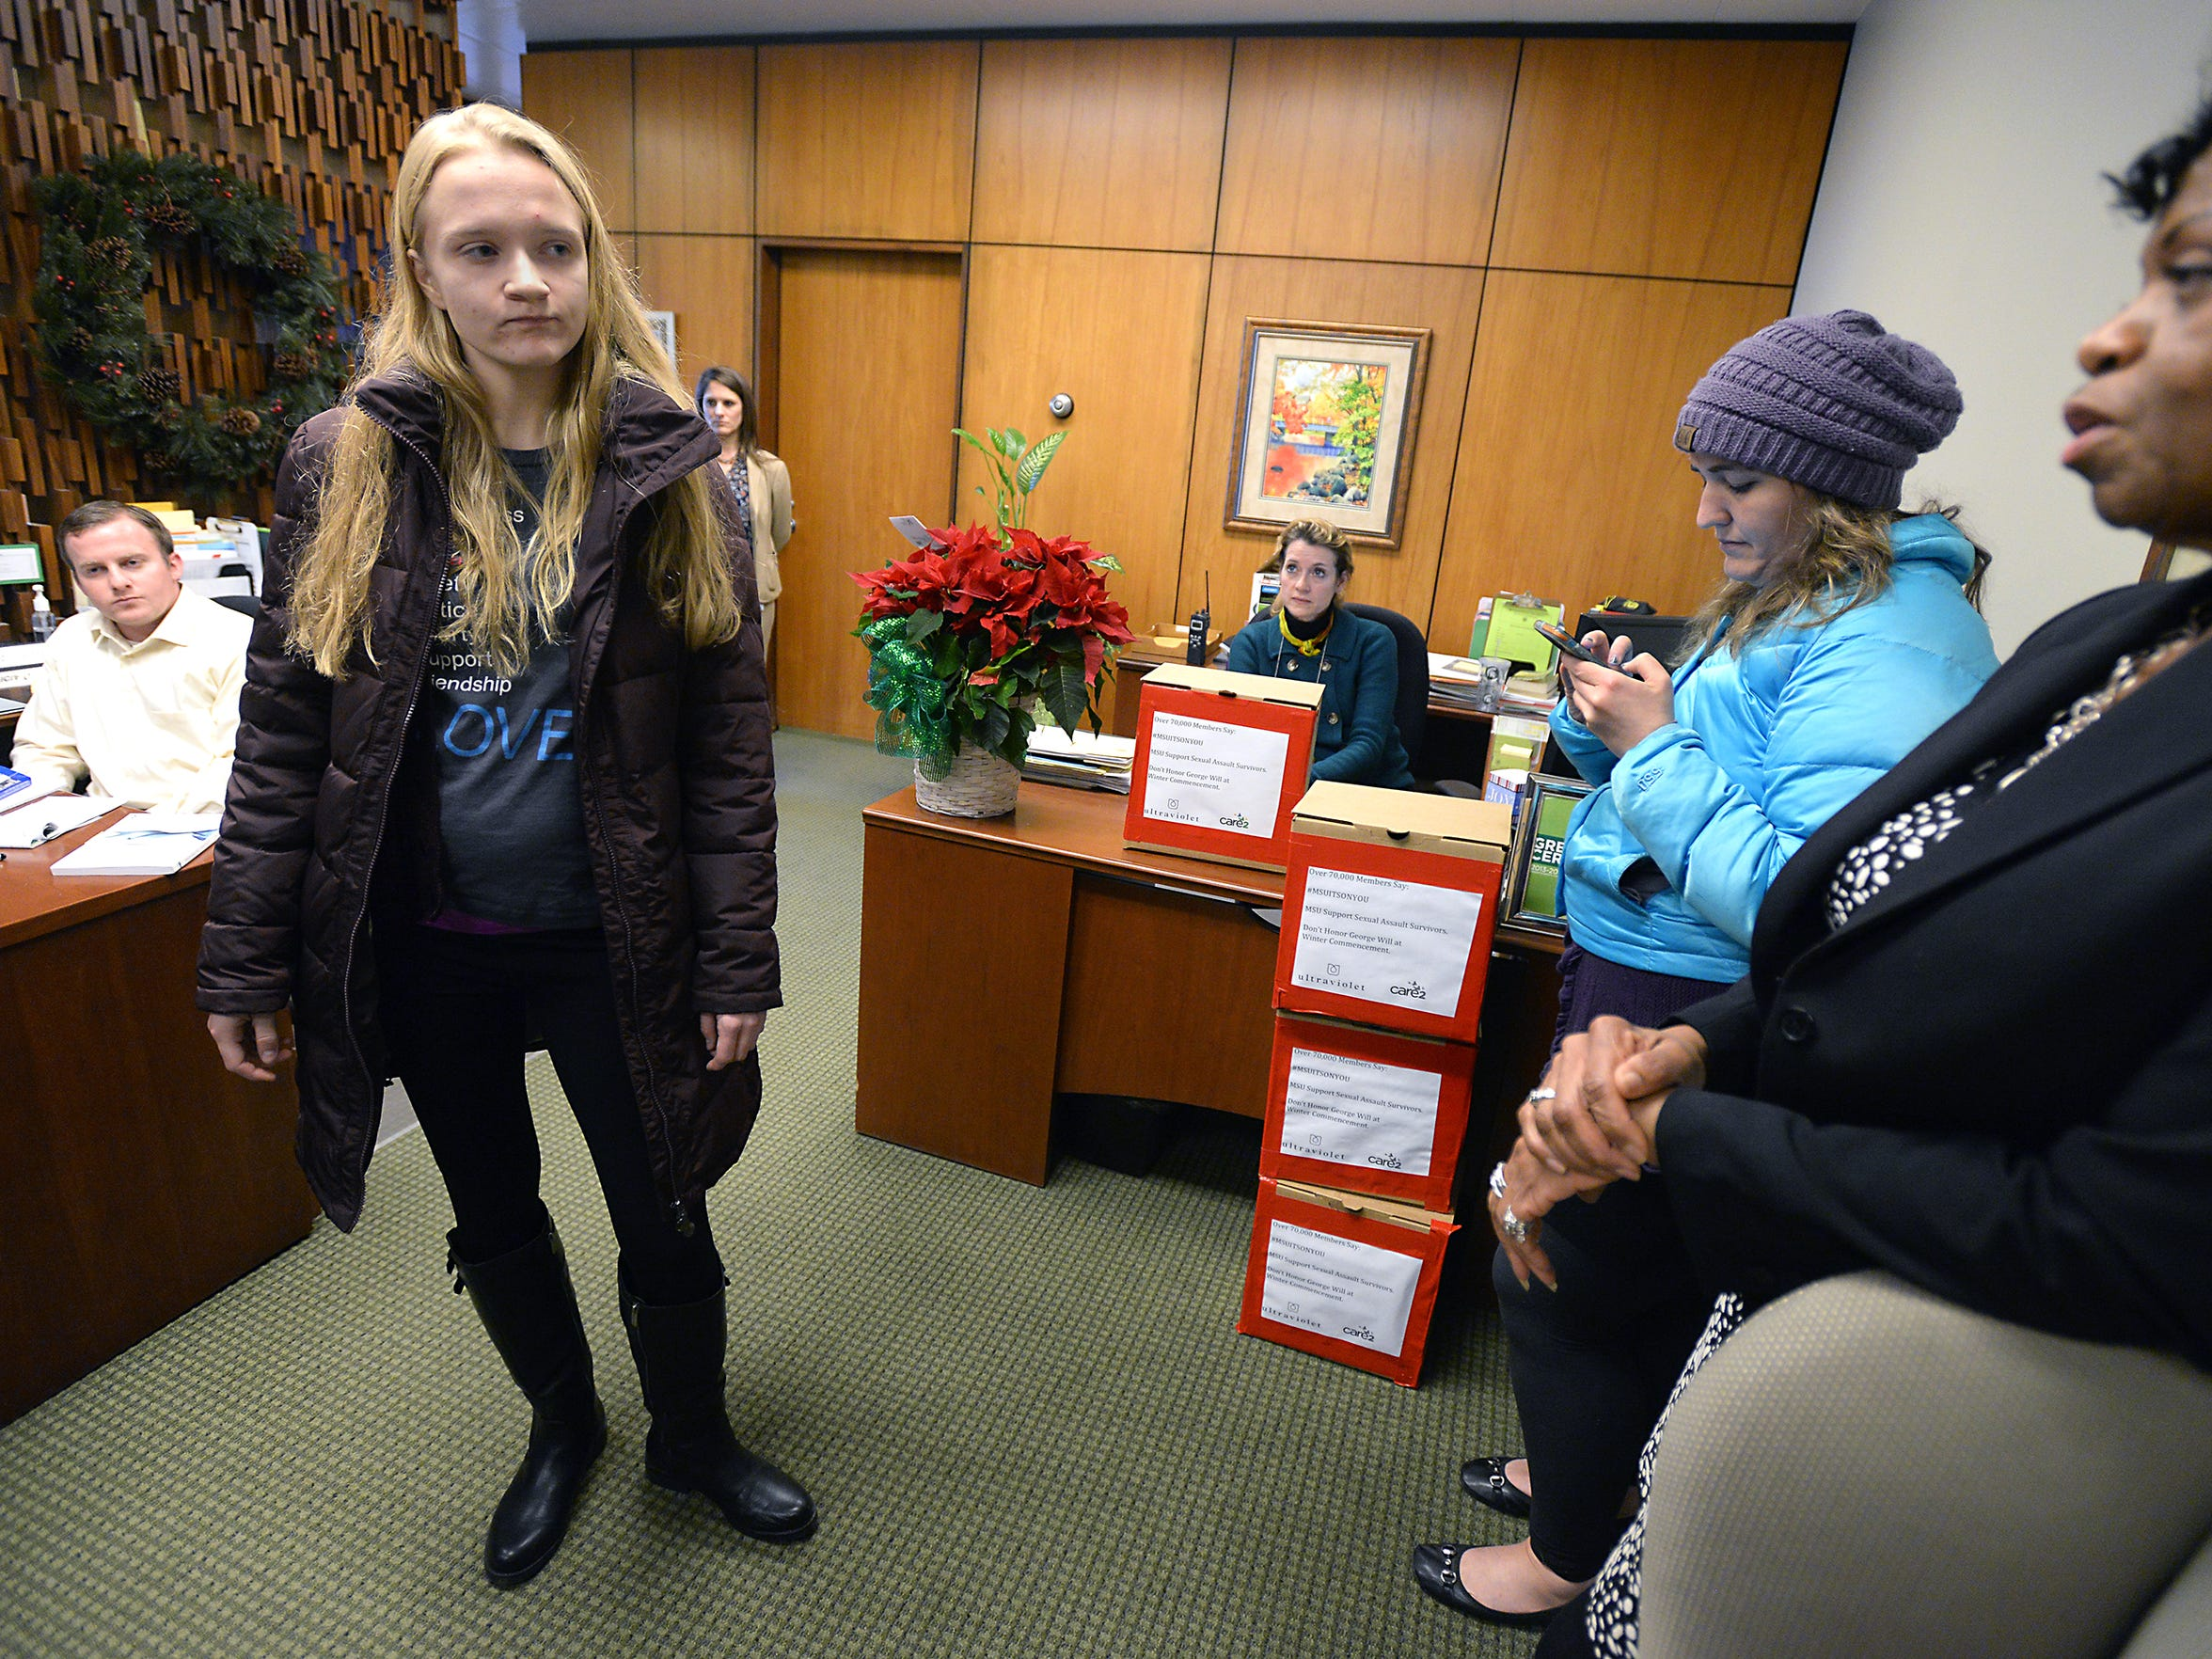 MSU student Emily Kollaritsch, standing left, speaks